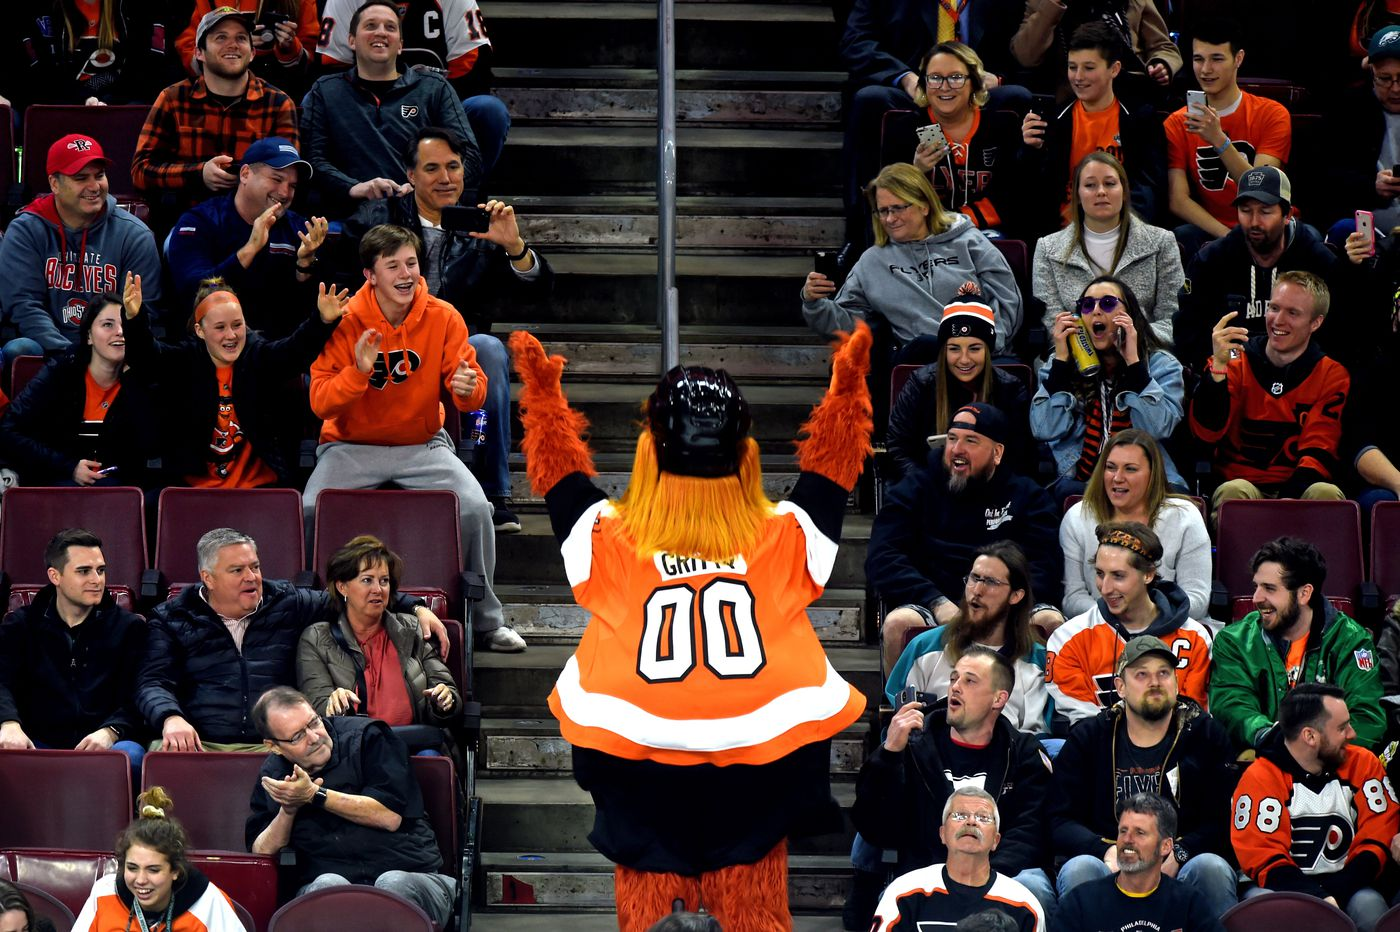 The Flyers are granting fans' wishes, and fans are not disappointing with their requests